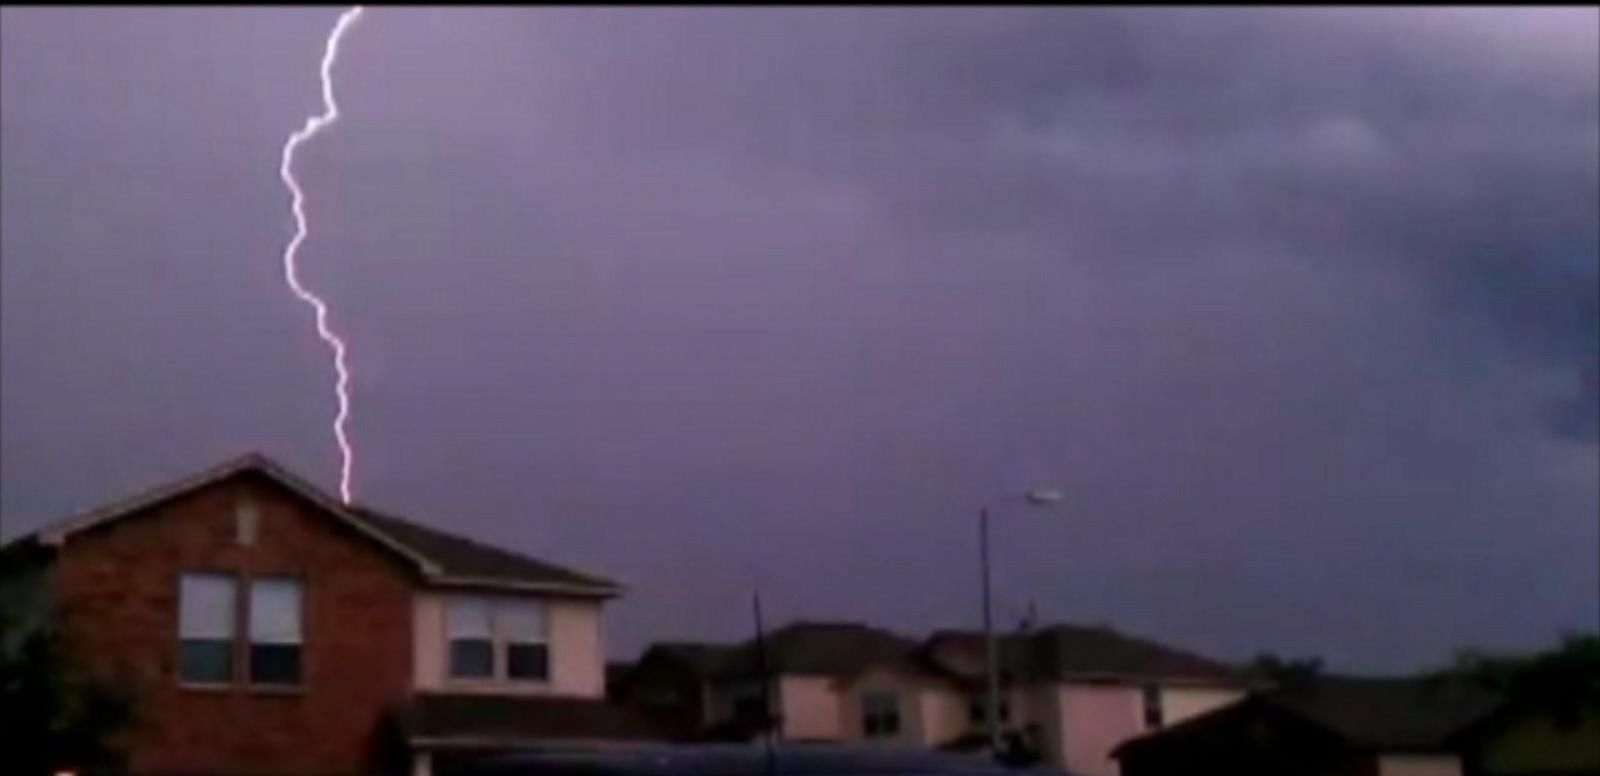 VIDEO: How to Survive a Lightning Strike